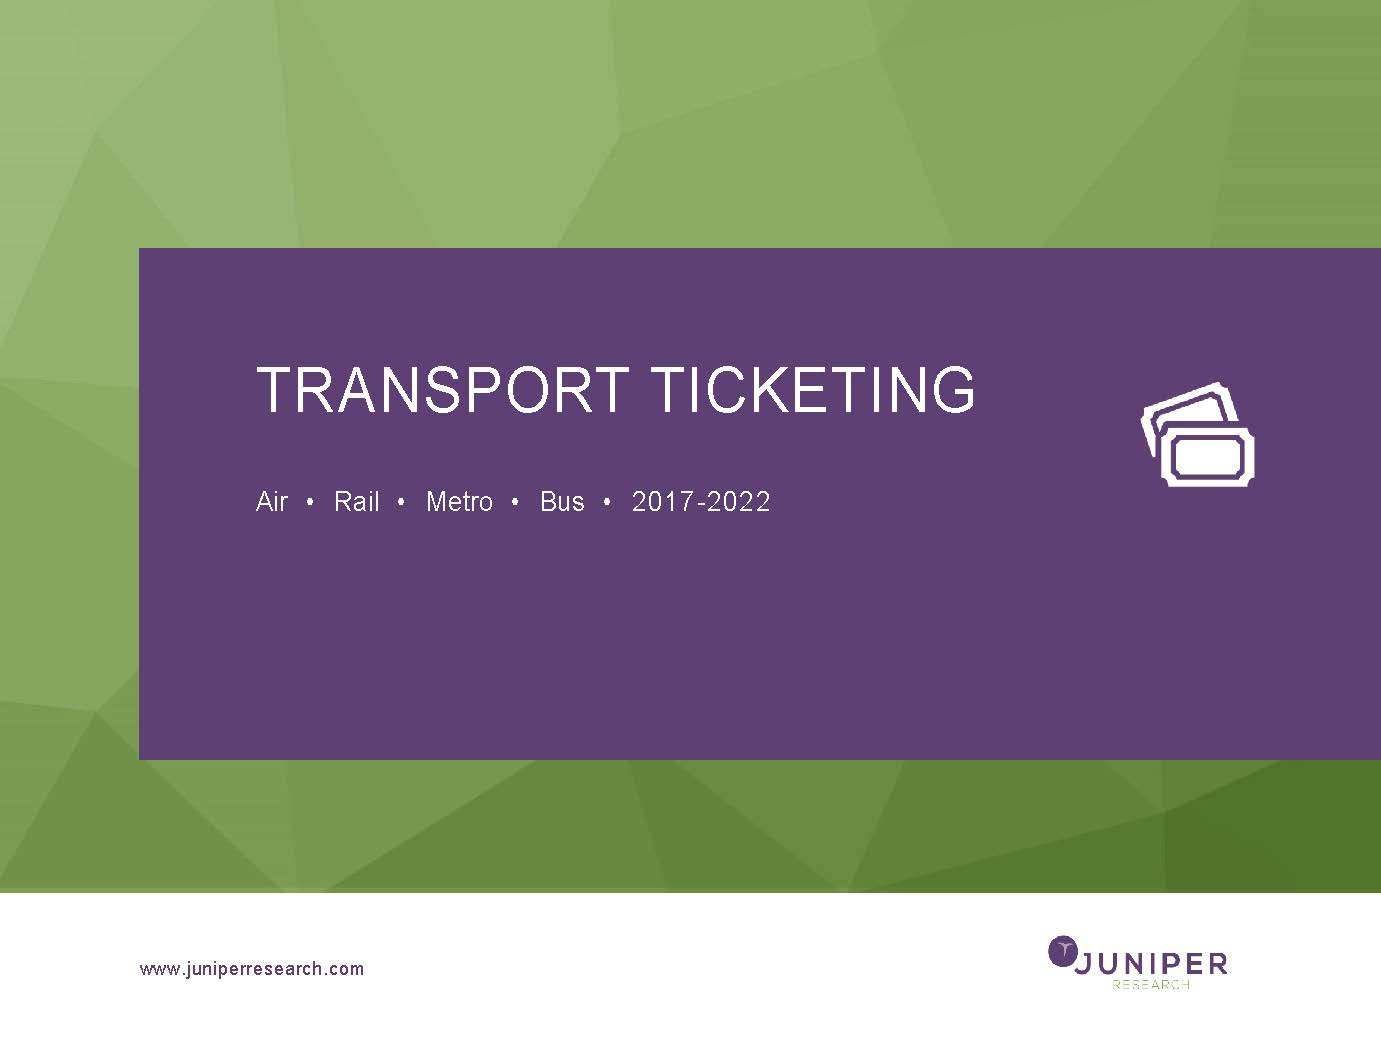 Transport Ticketing 2017-2022